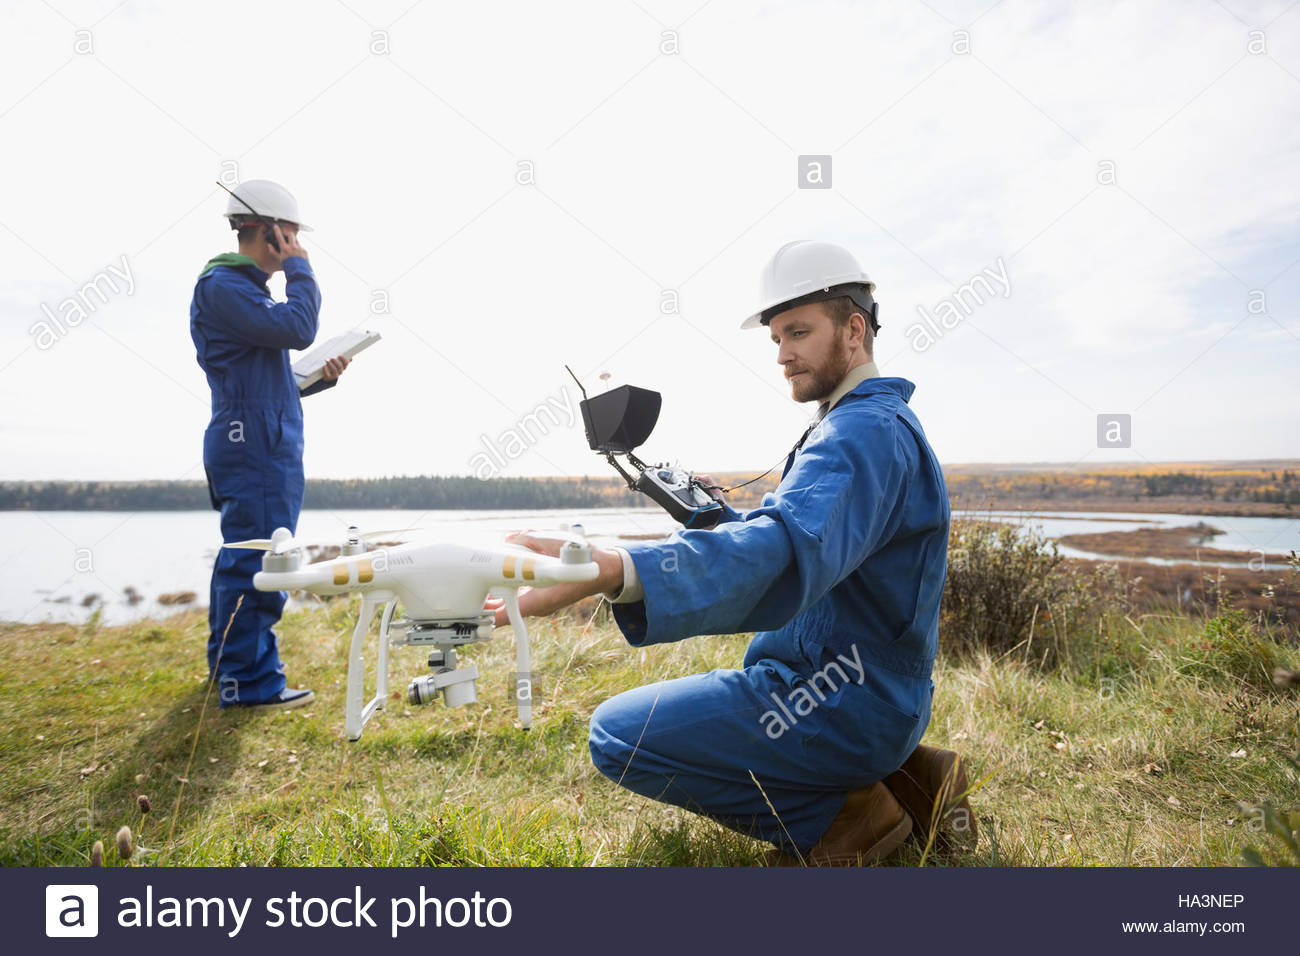 Surveyors with drone equipment on hill overlooking lake - Stock Image